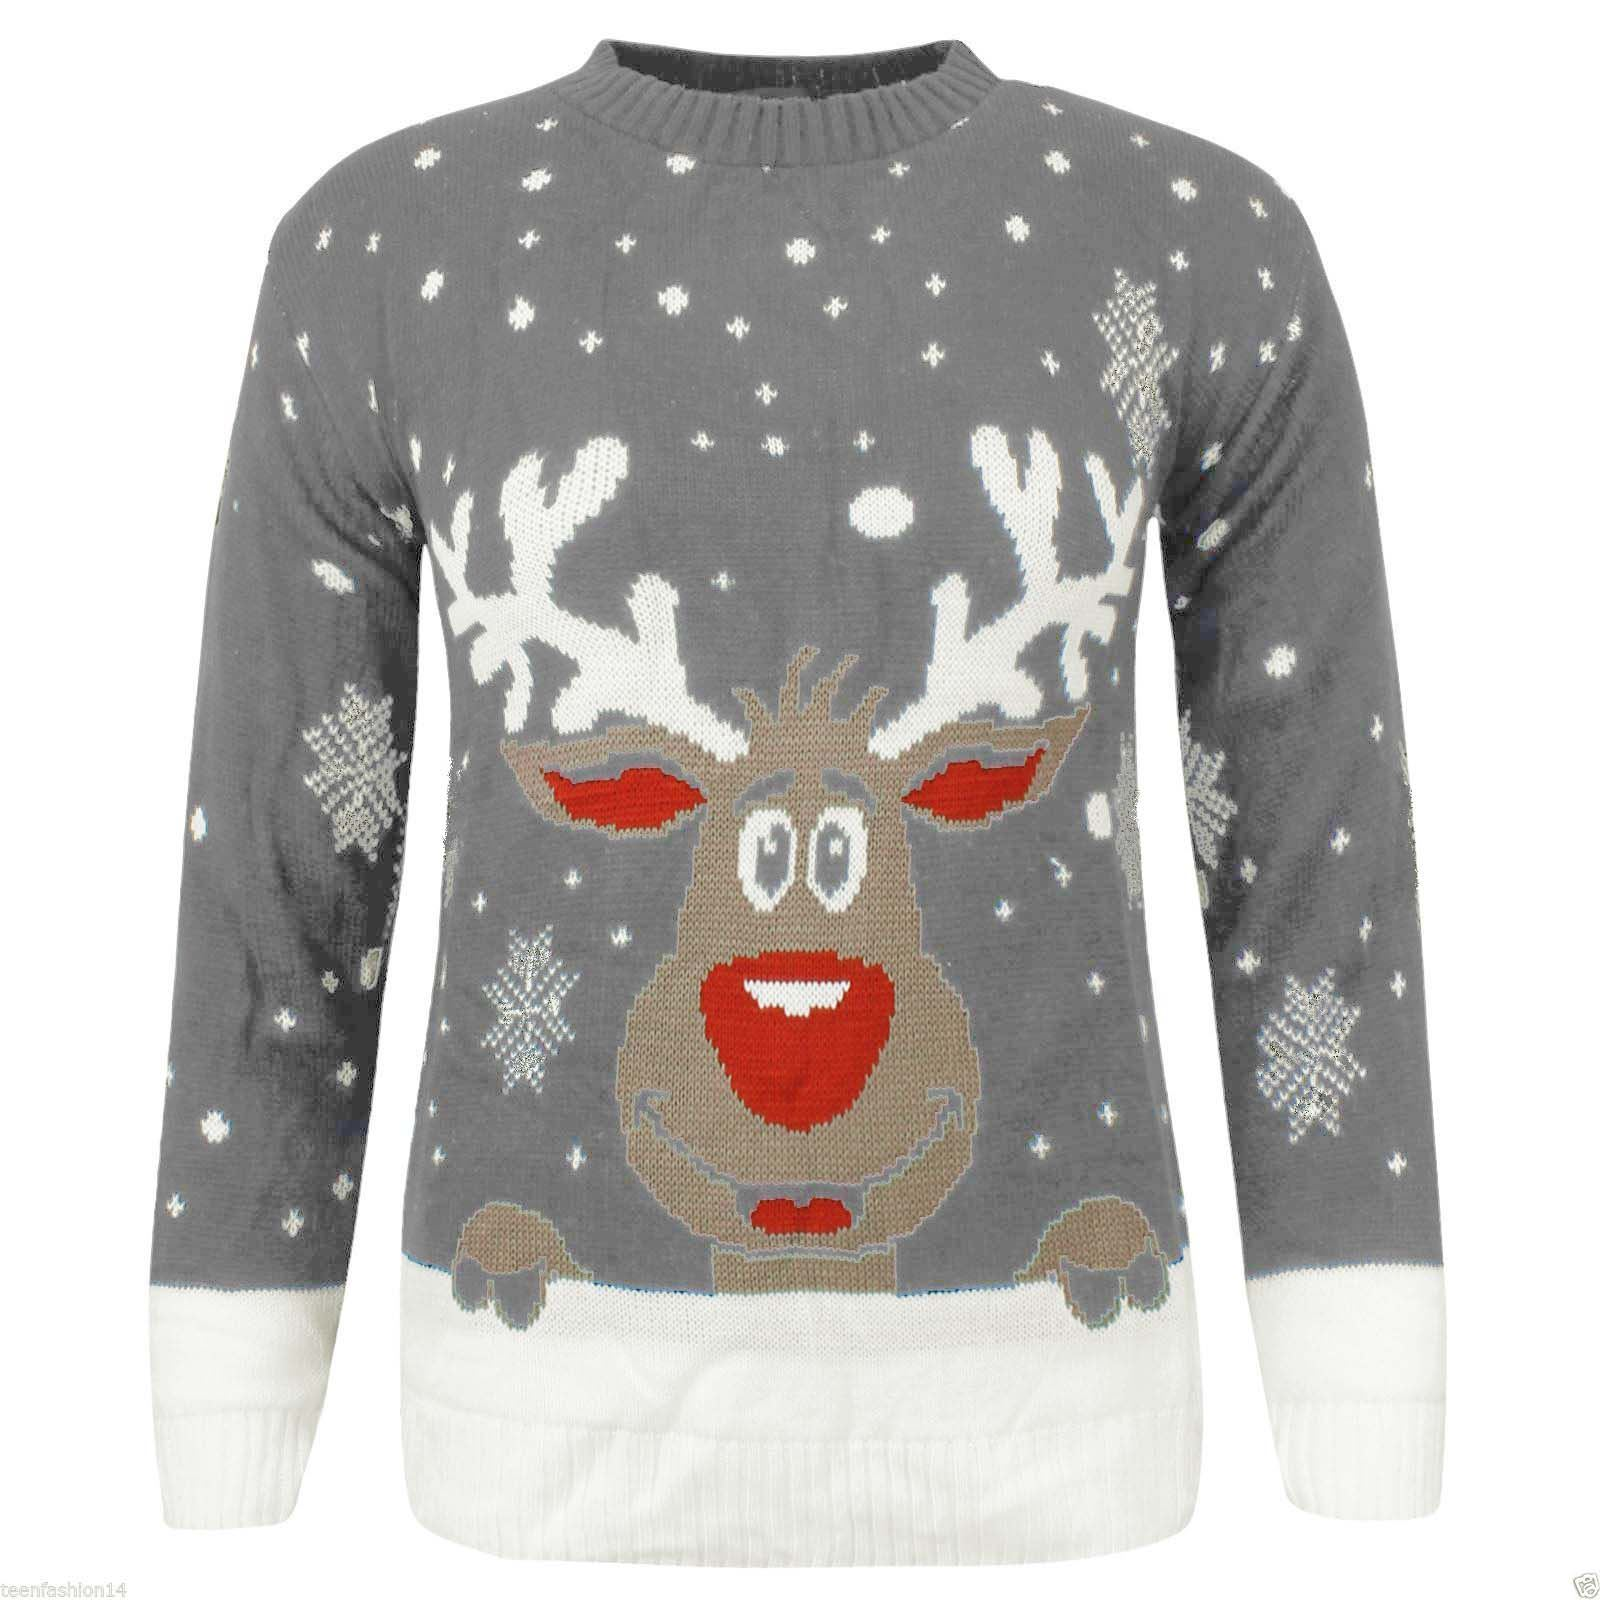 About Reindeer Sweaters The warm lights from the tree, wrapping presents, baking cookies, and singing Christmas carols are just a few of the things you love about the holidays. The Christmas spirit is in the air and reindeer sweaters are exactly what you need for your next holiday party or family get-together.